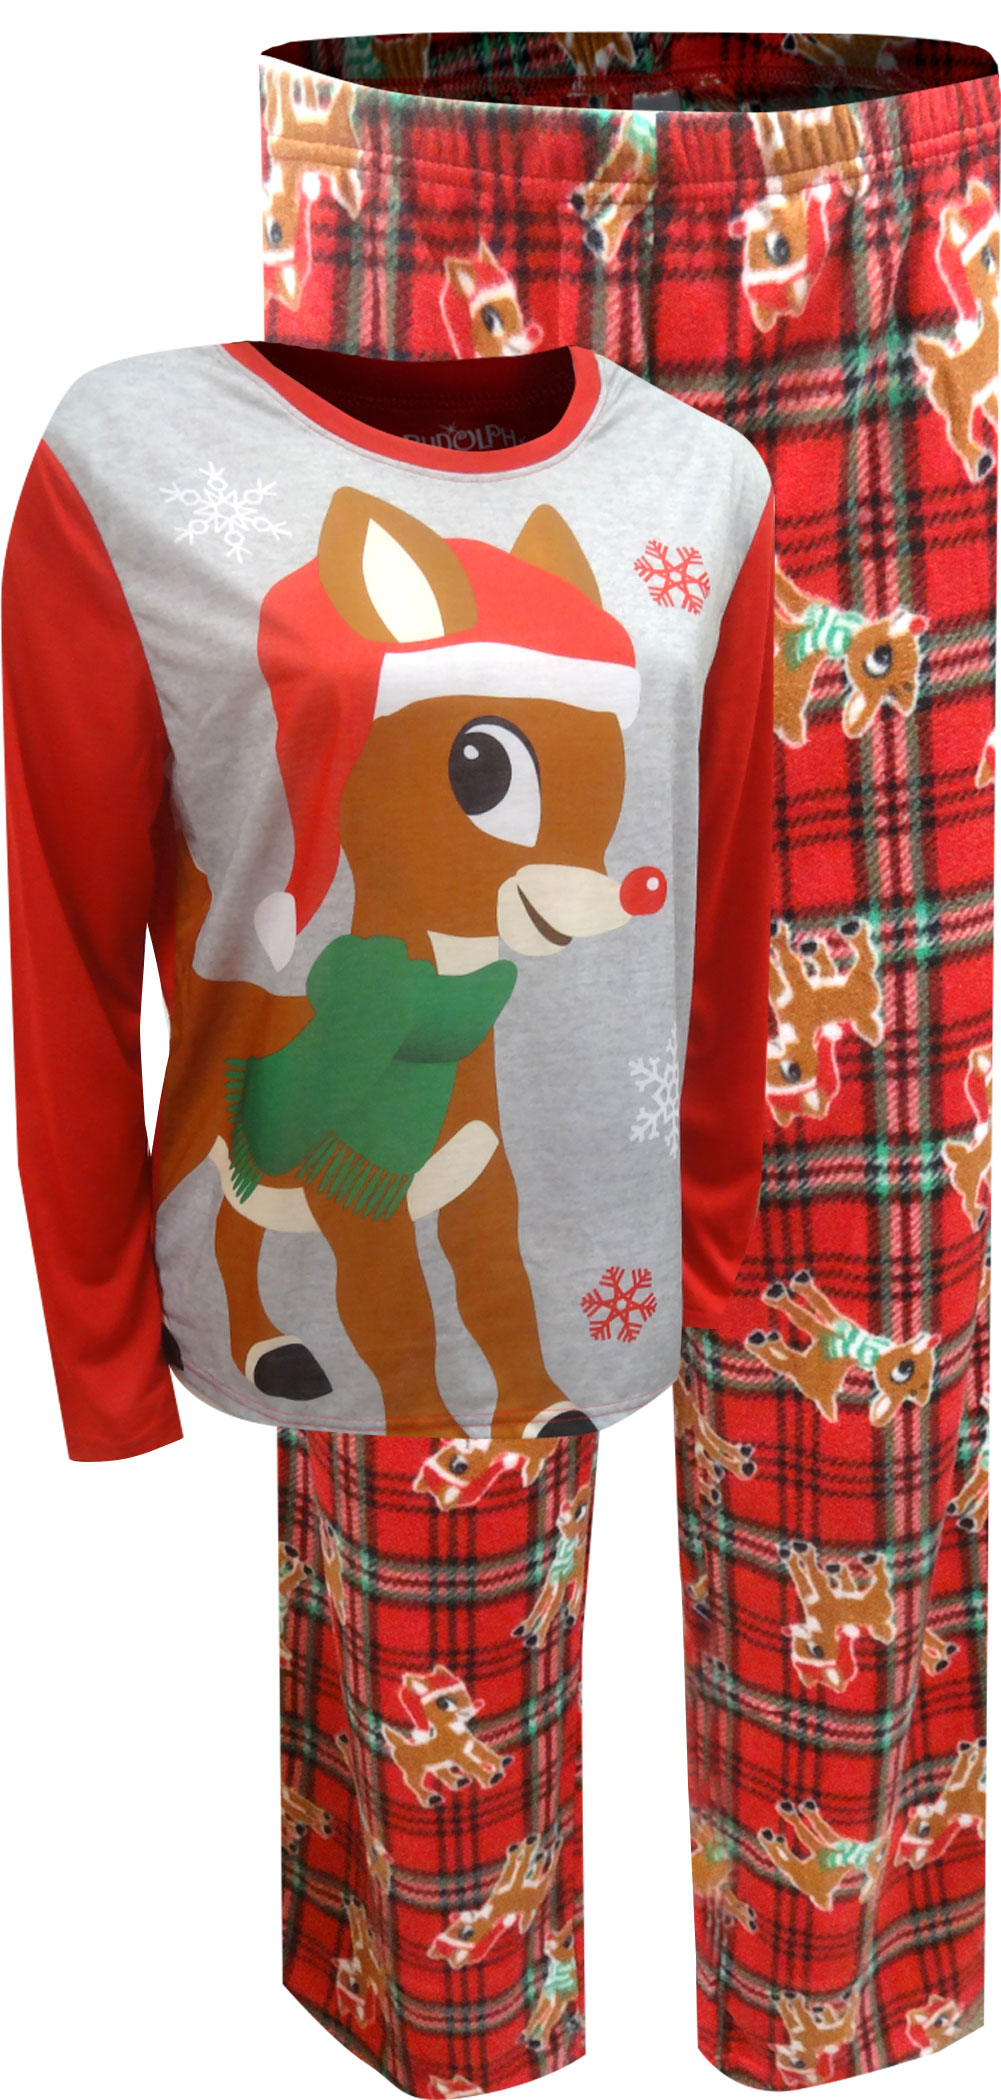 Image of Christmas Rudolph The Red-Nosed Reindeer Plus Size Pajamas for Women